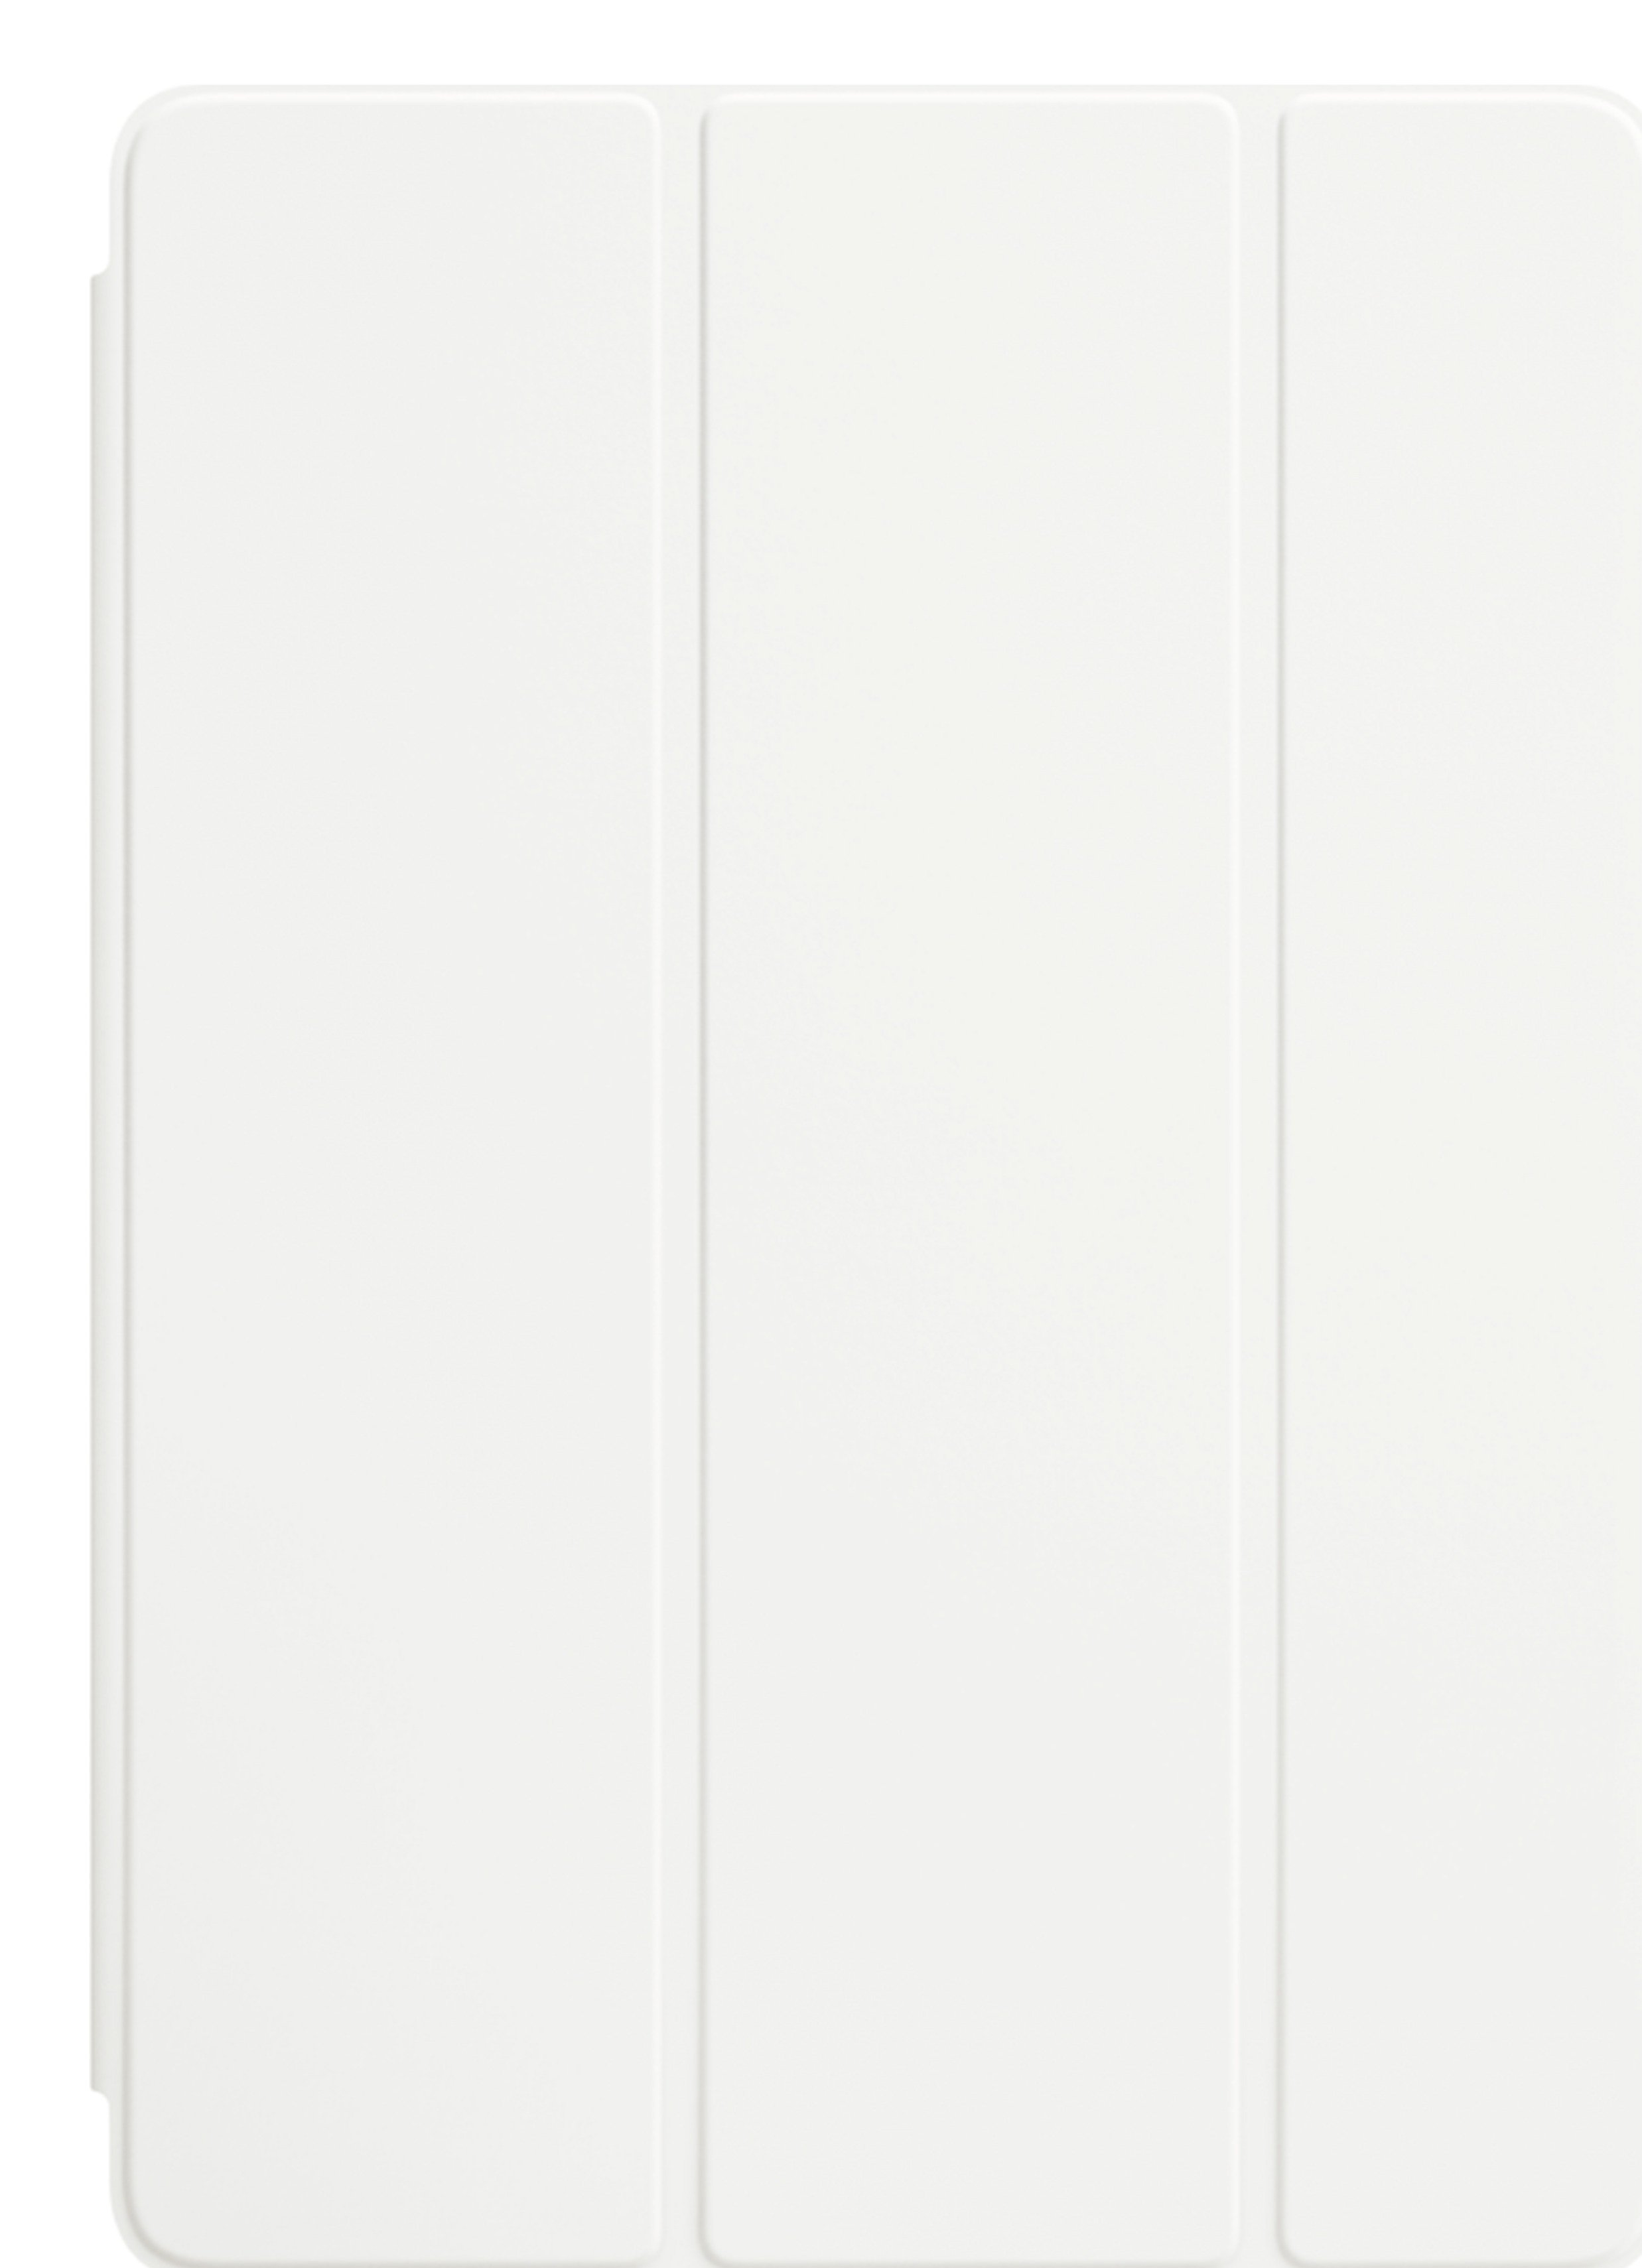 Image of Apple 10.5 Inch iPad Pro Smart Cover - White